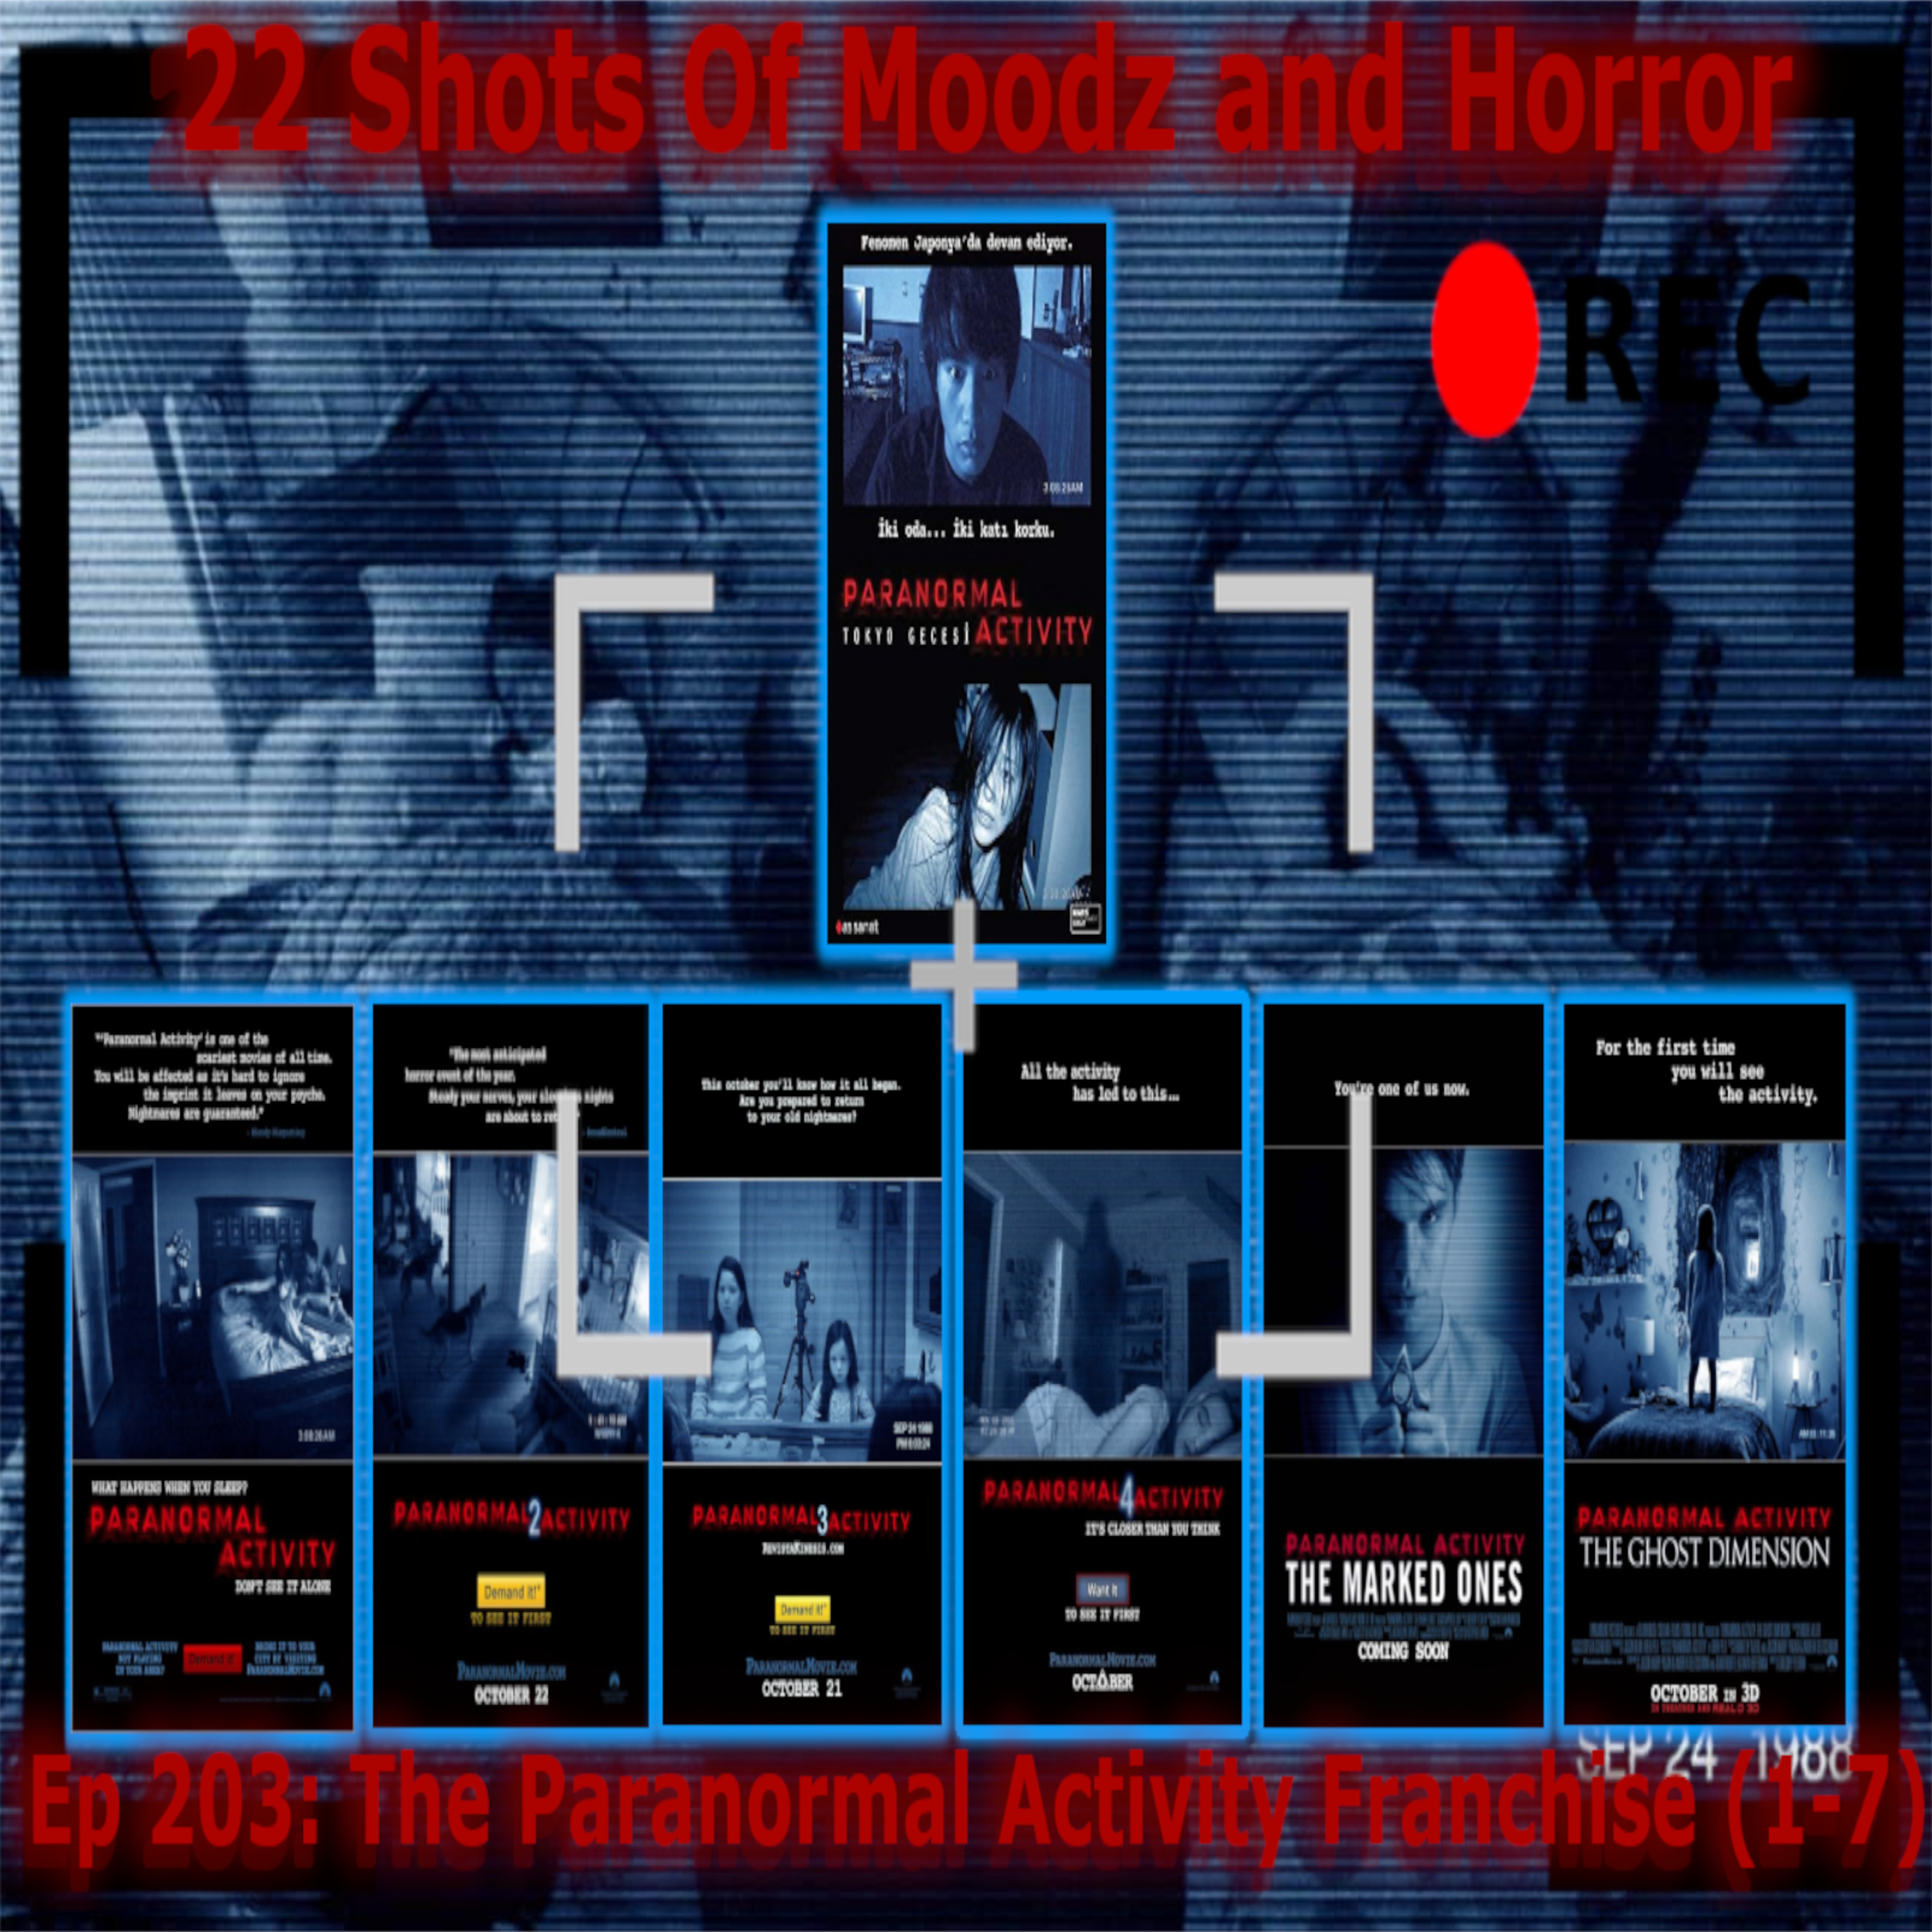 Ep 203: The Paranormal Activity Franchise (1-7) | 22 Shots Of Moodz And Horror